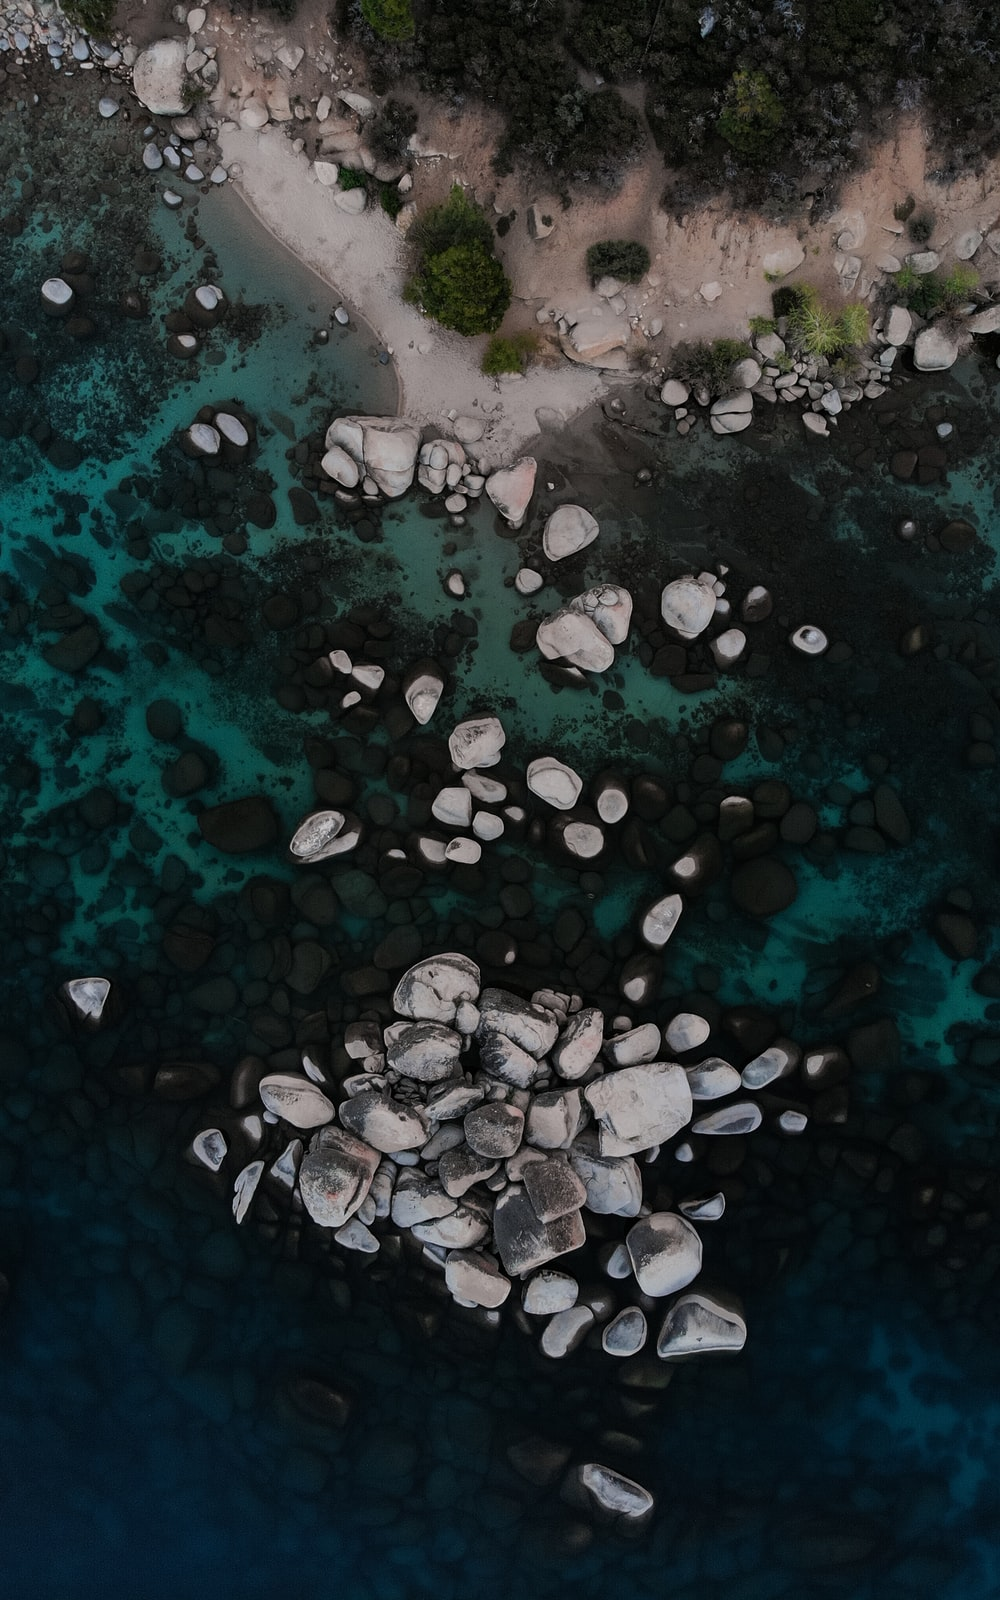 white and black stones on body of water